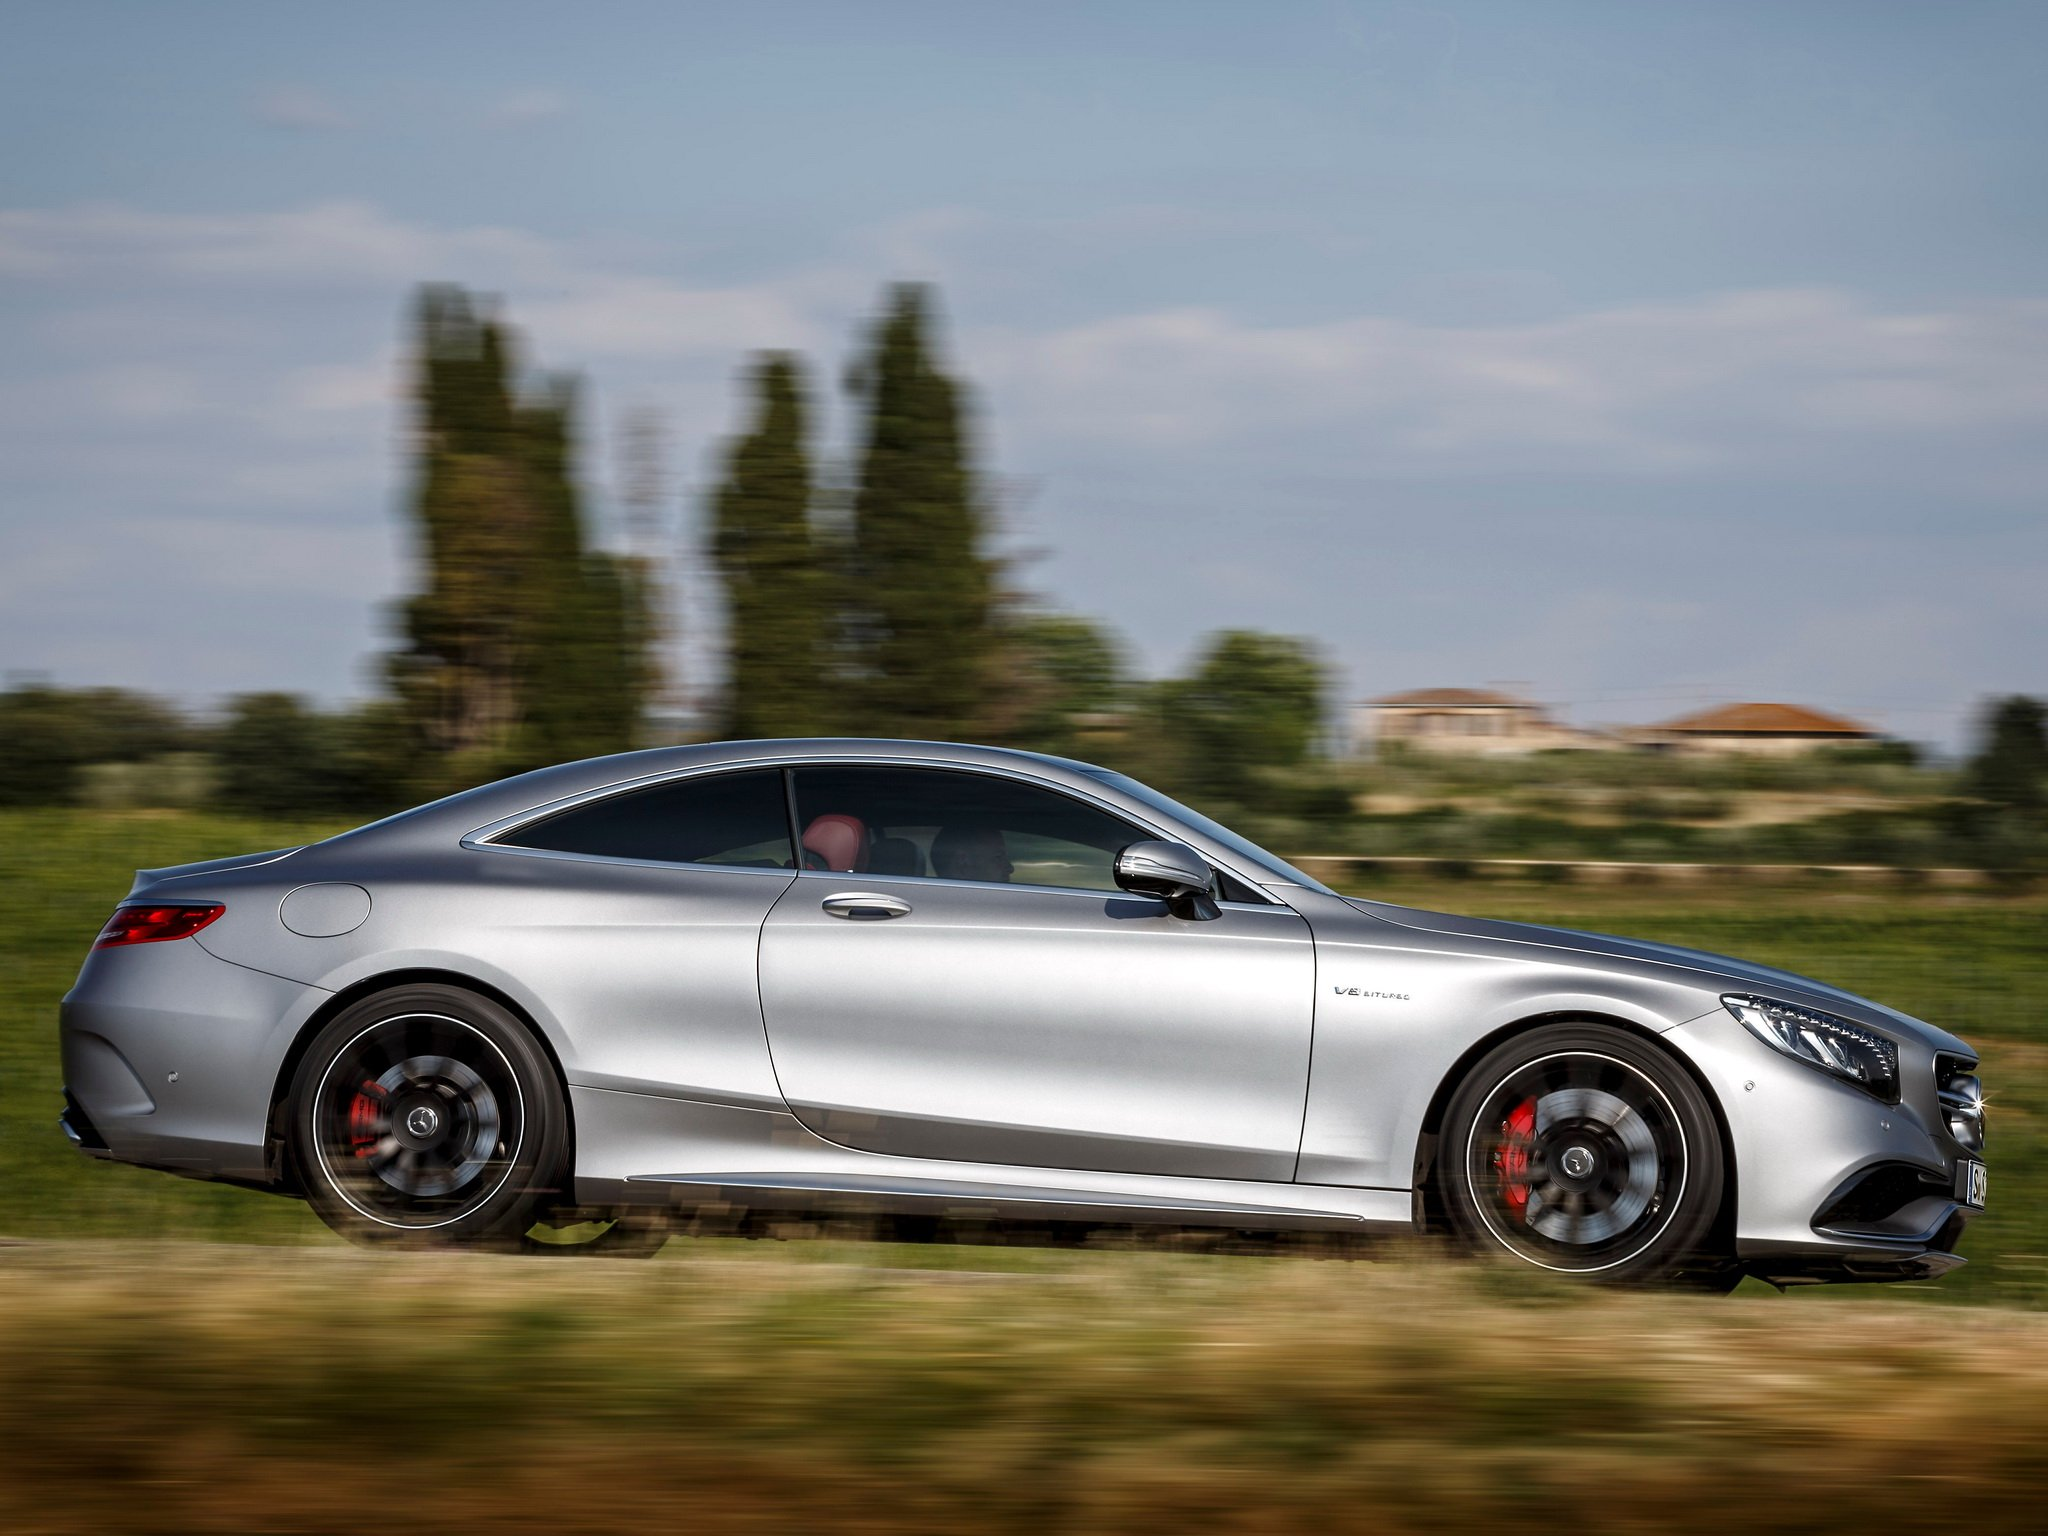 2014 mercedes benz s63 amg coupe c217 fs wallpaper for Mercedes benz s63 amg coupe